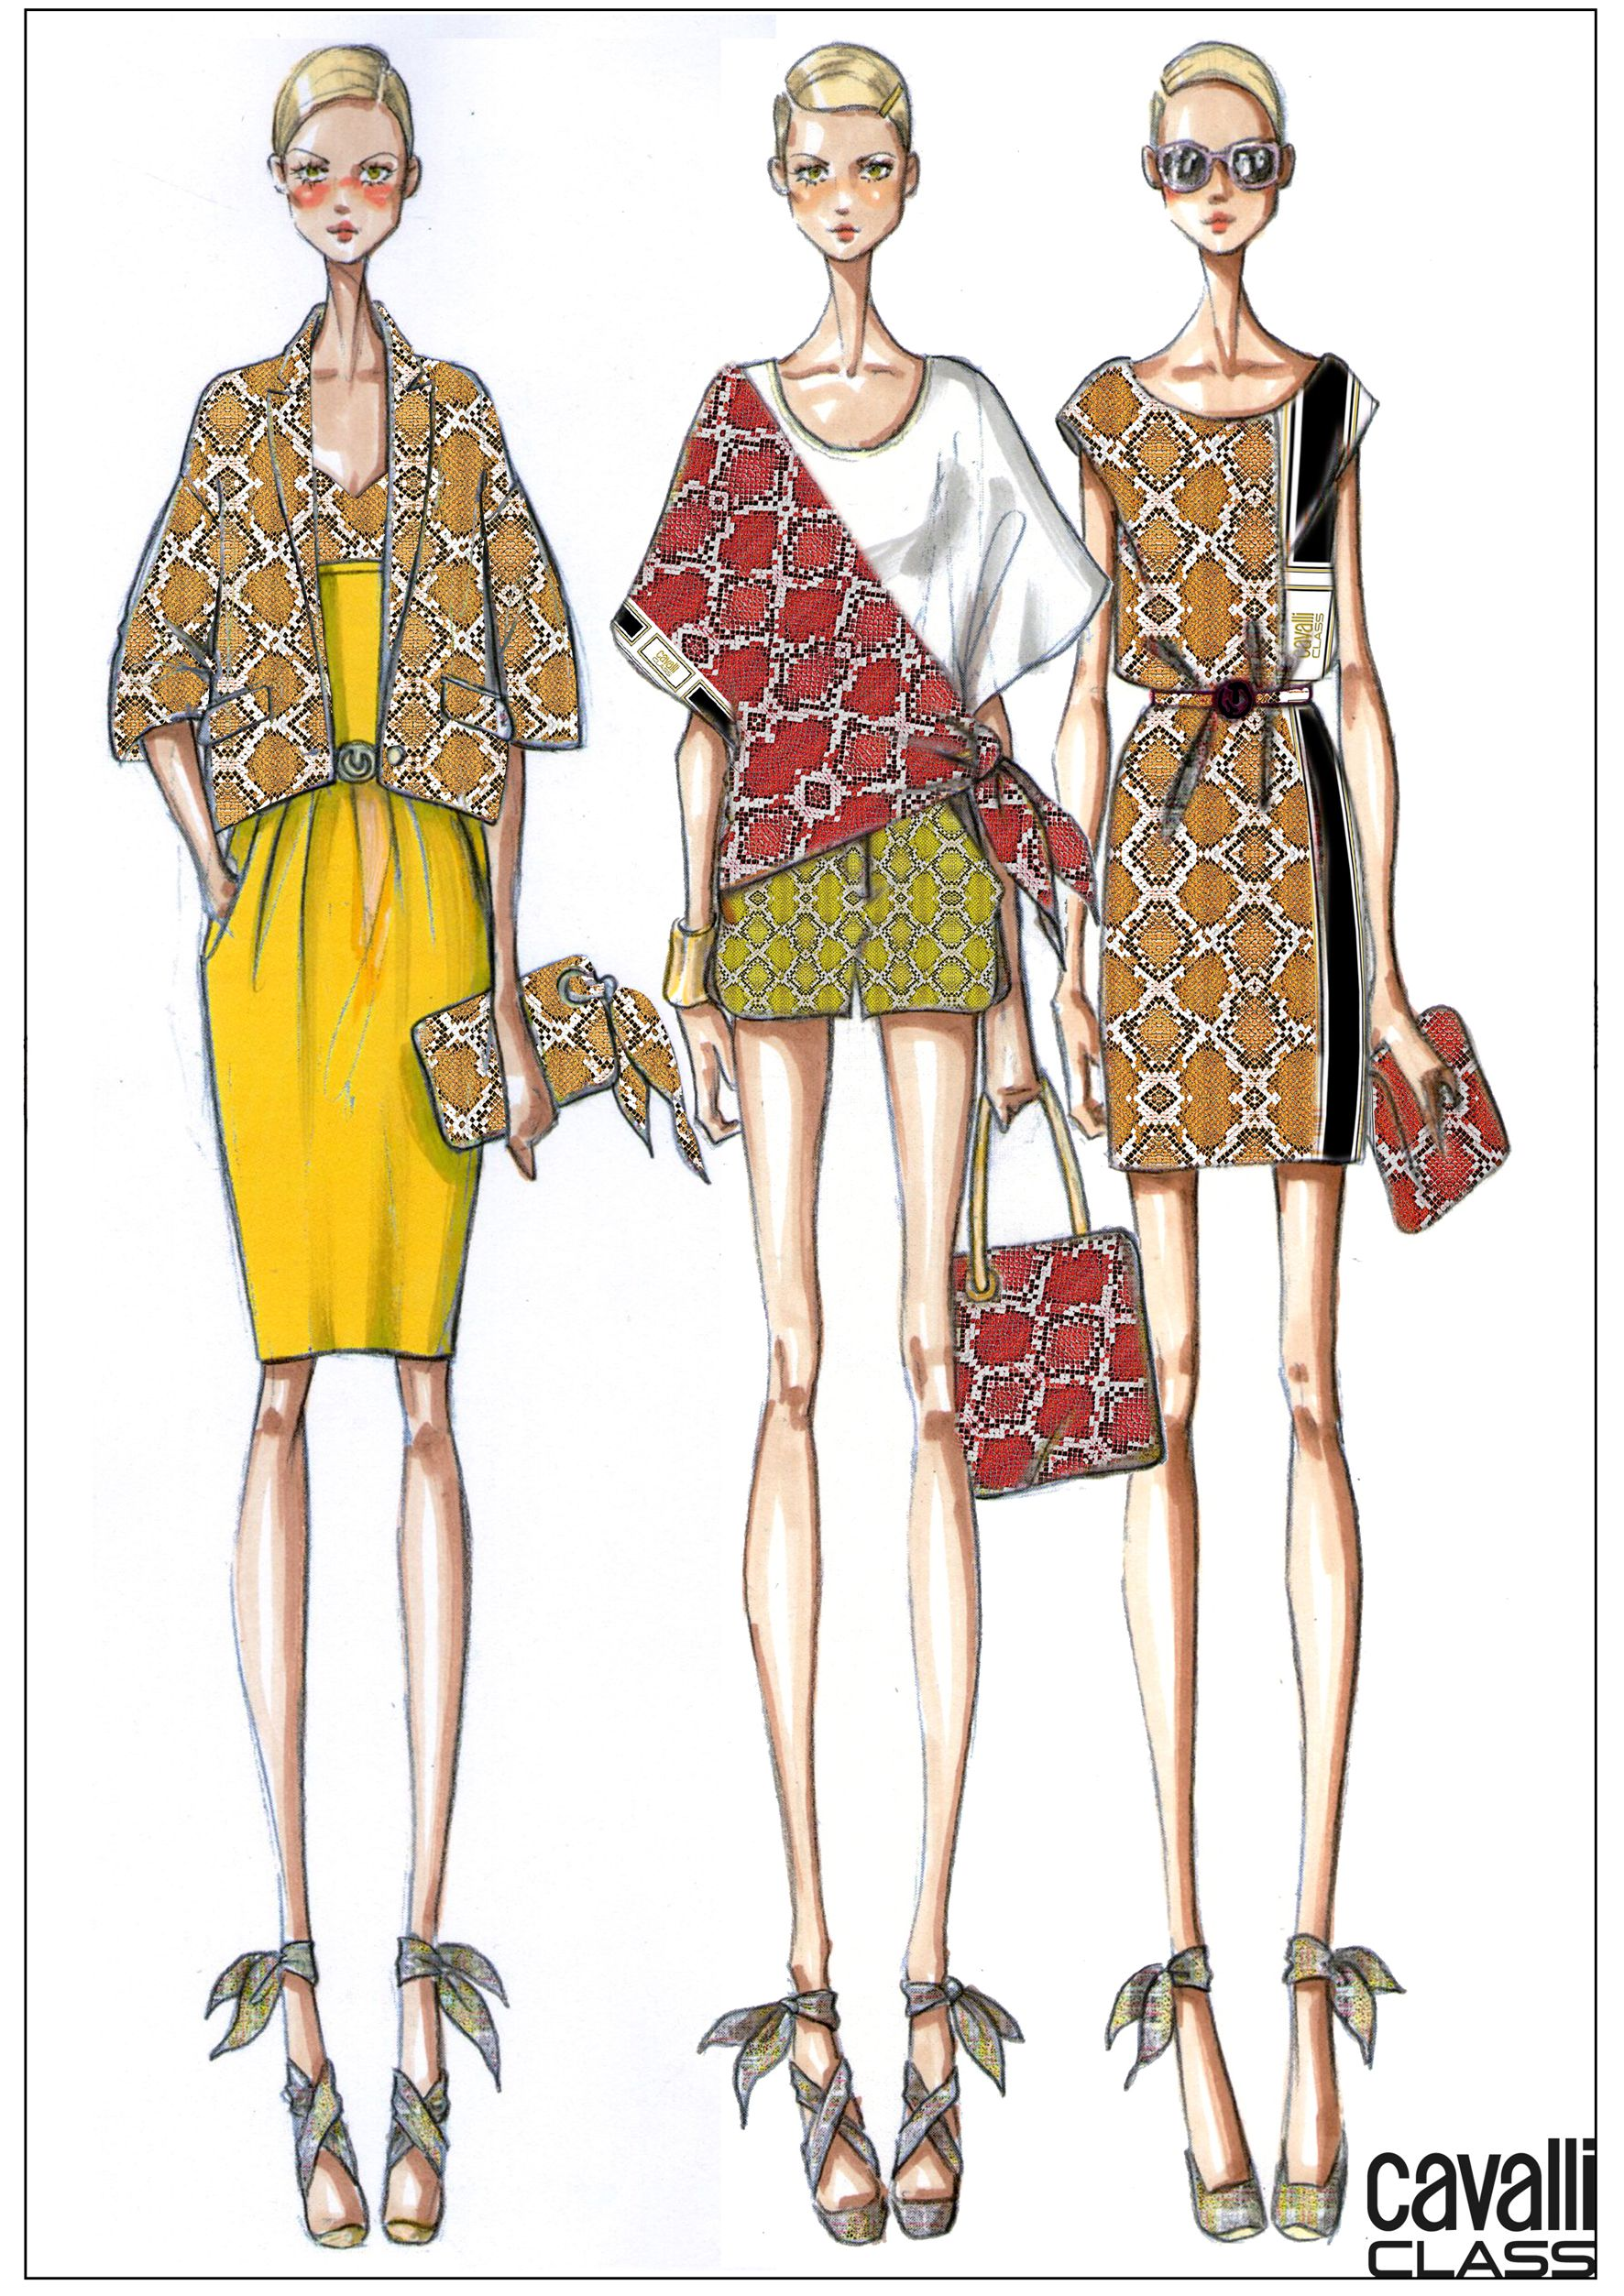 The Sketches Of The New Cavalli CLASS SS 2014 Capsule